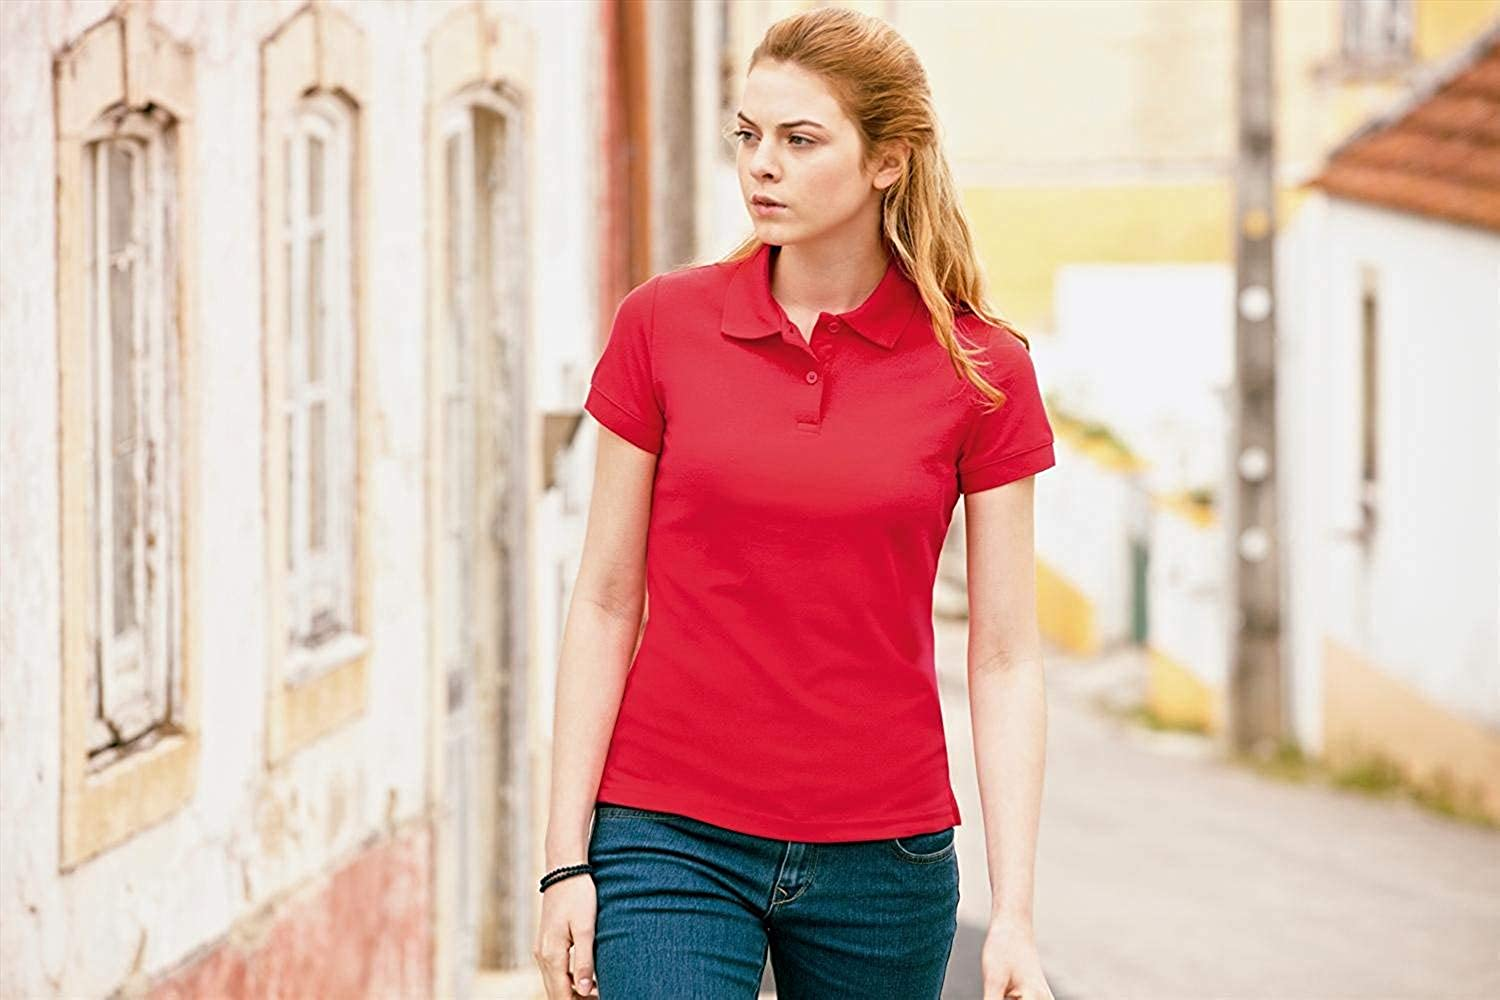 Donna Fruit Of The Loom Polo Manica Corta